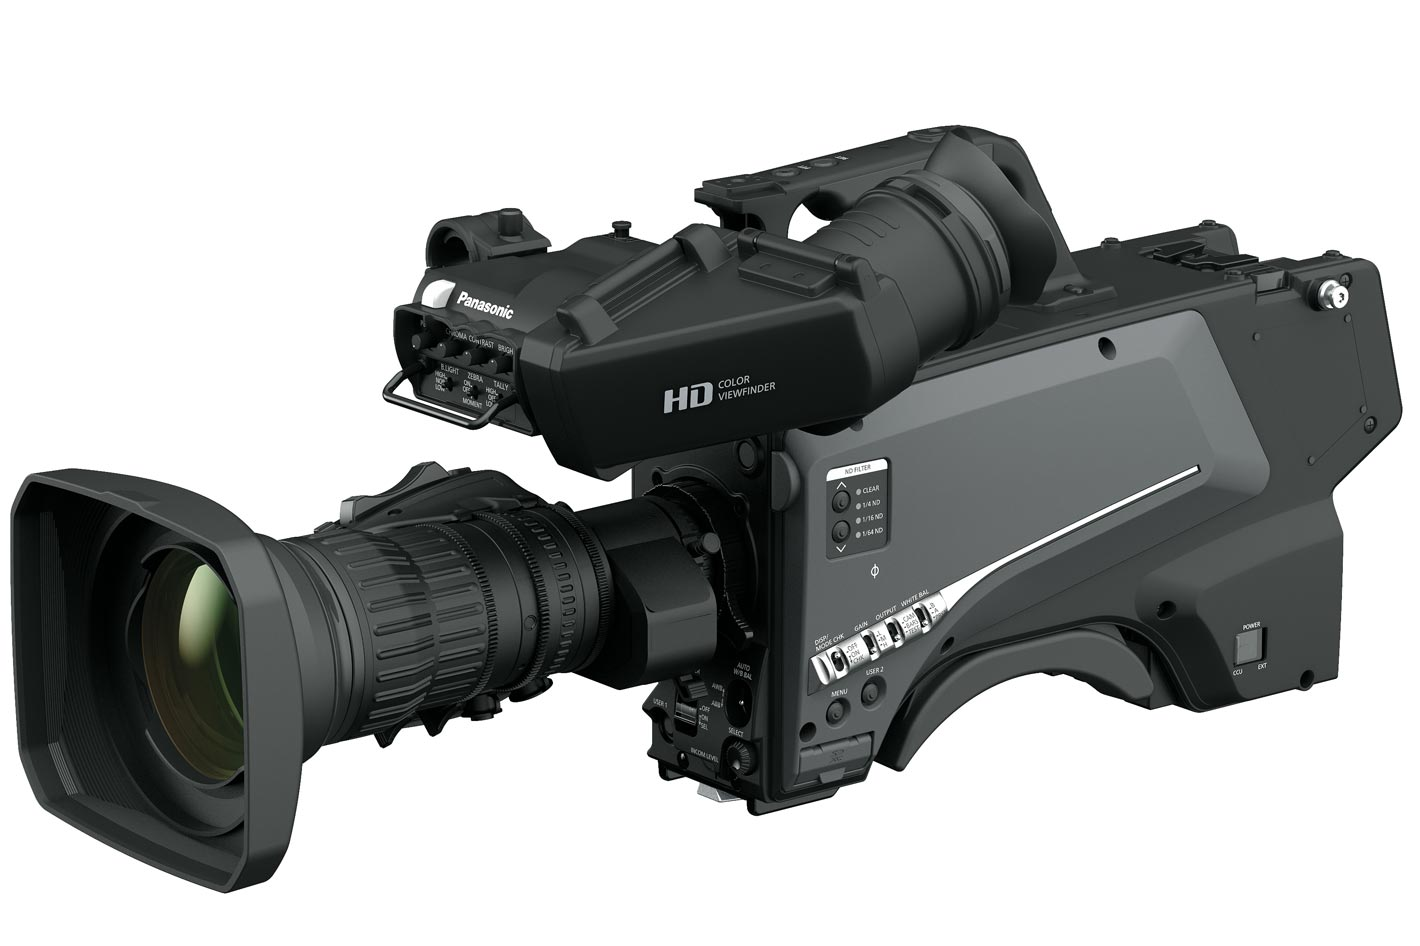 Panasonic AK-HC3900 a studio camera upgradable to native 4K